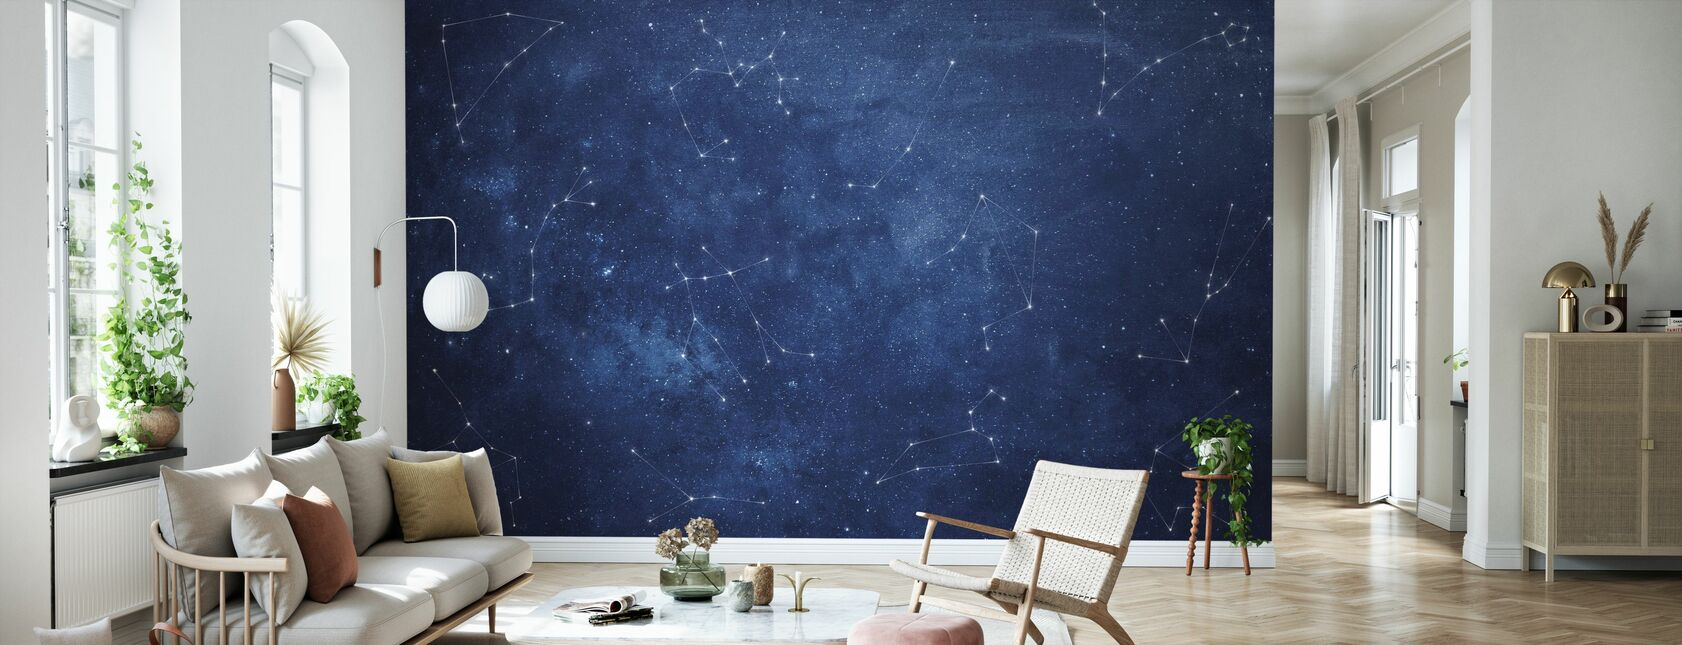 Zoodiac Sky - Wallpaper - Living Room